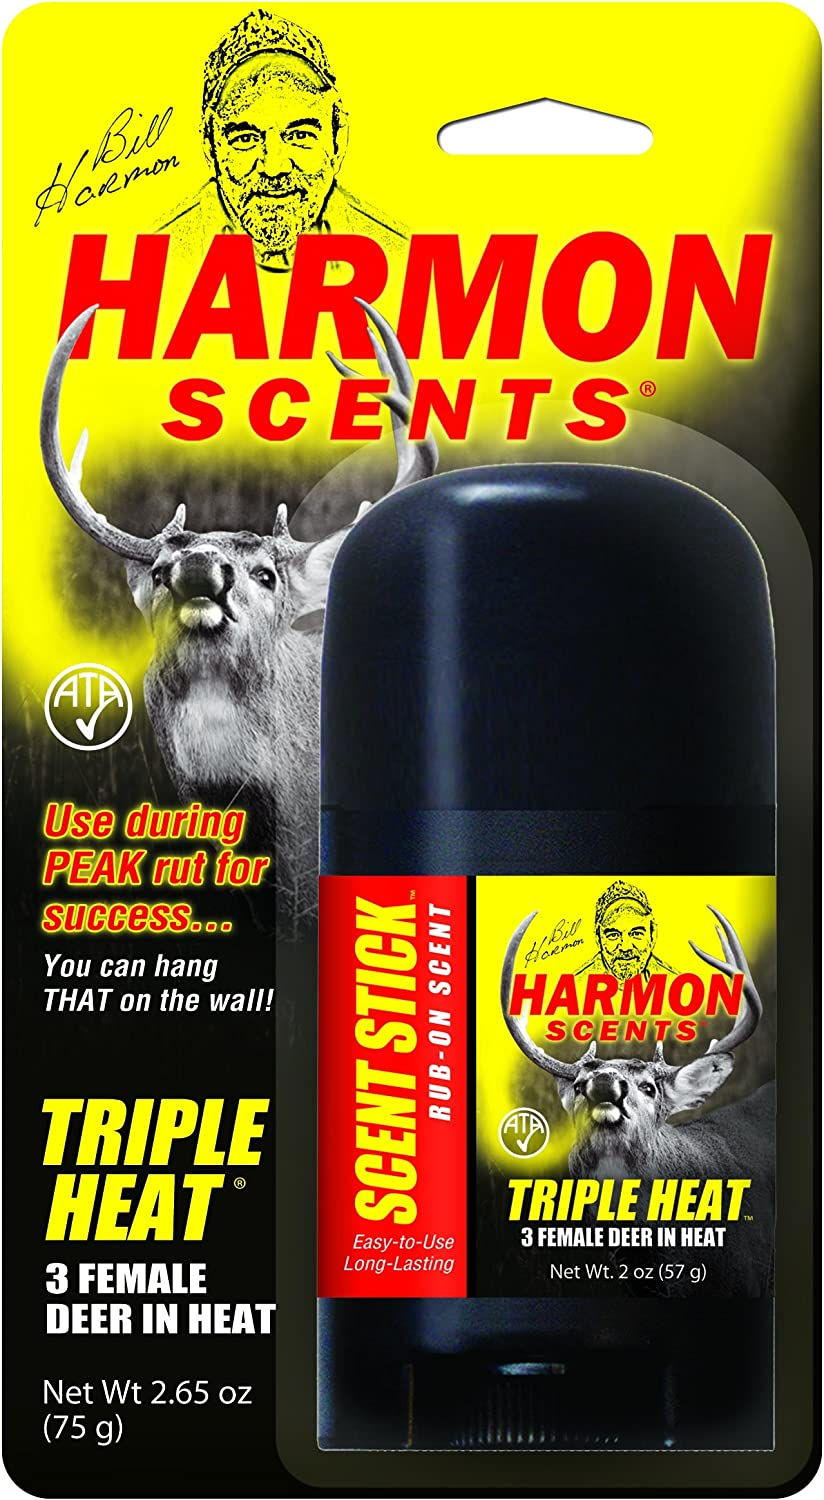 Harmon Scents - Triple Heat Female in Heat - Rub On Scent Stick - HTHSS - Whitetail Hunting Urine - Deer Hunting Attractant and Lure - Doe Estrous Scents